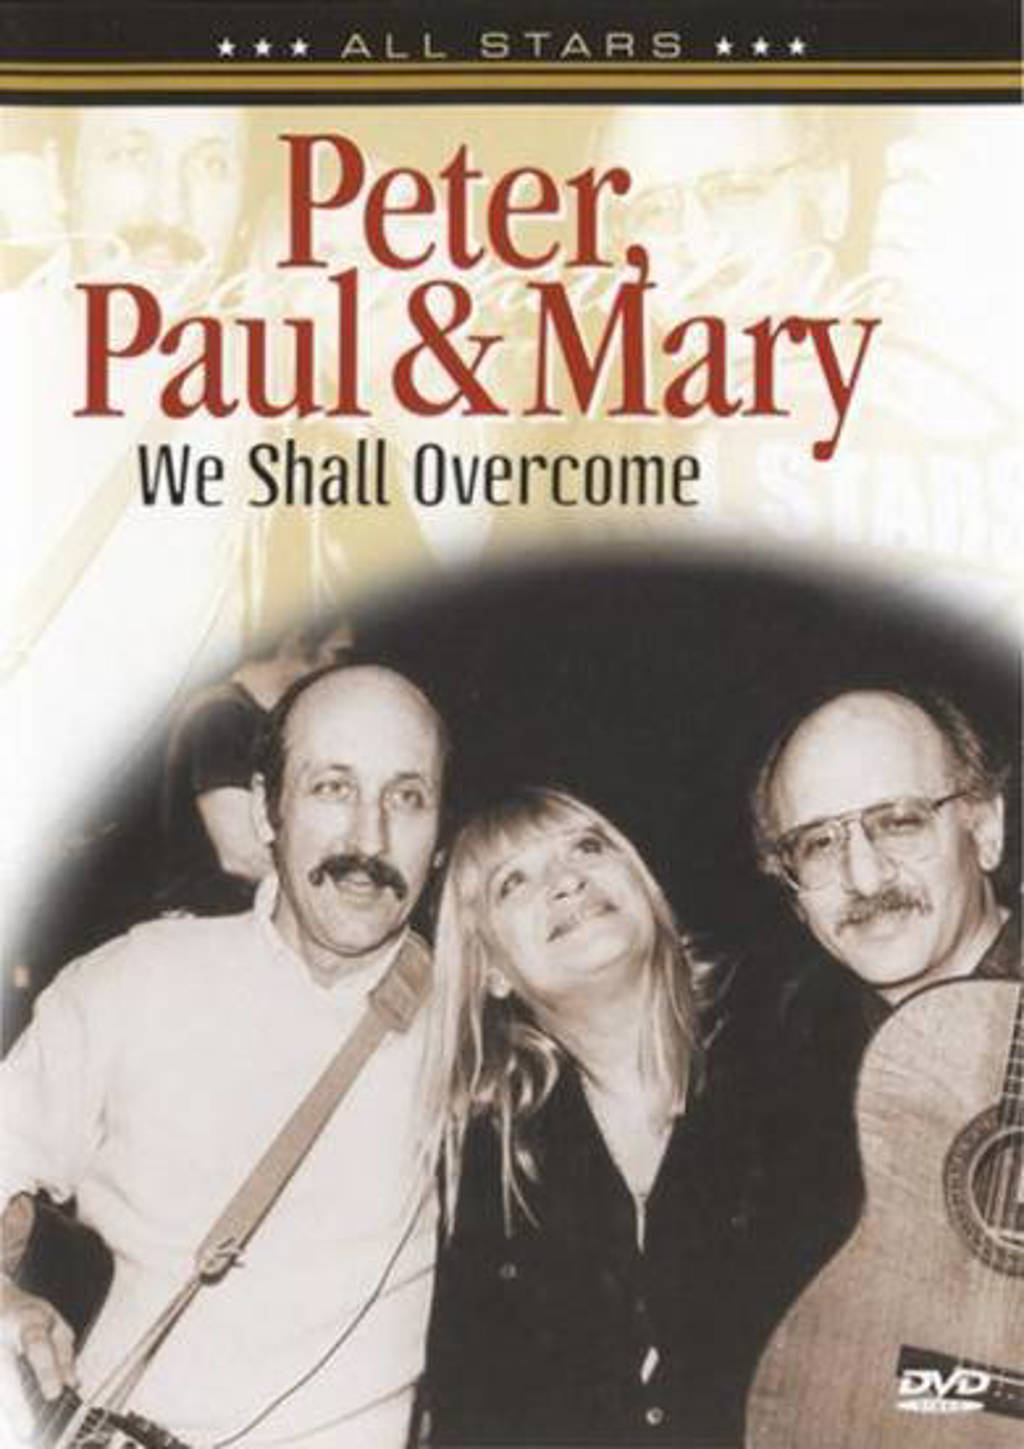 Peter, Paul & Mary - we shall overcome (DVD)